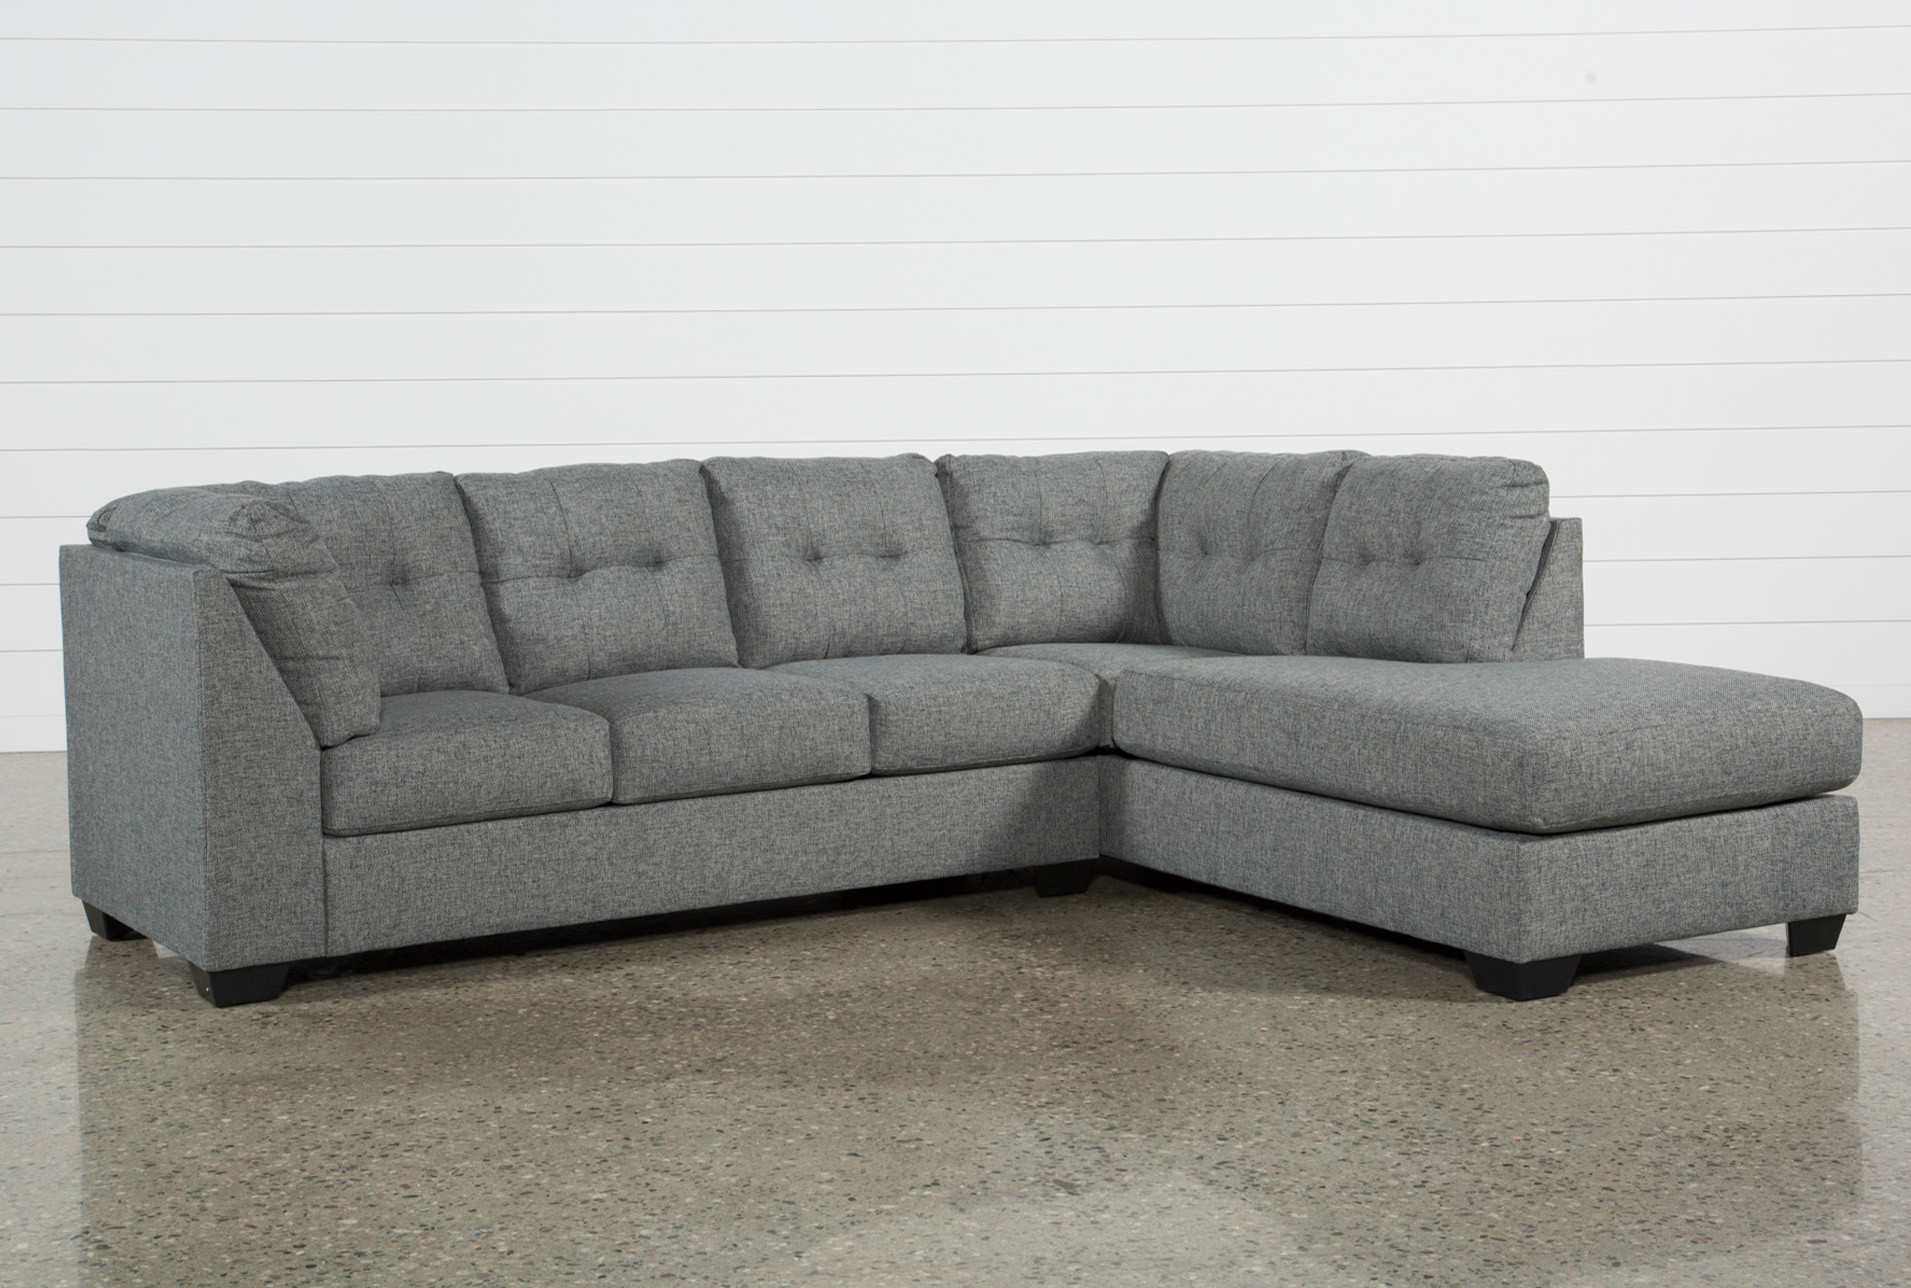 Arrowmask 2 Piece Sectional W/Raf Chaise (Qty: 1) Has Been Successfully  Added To Your Cart.